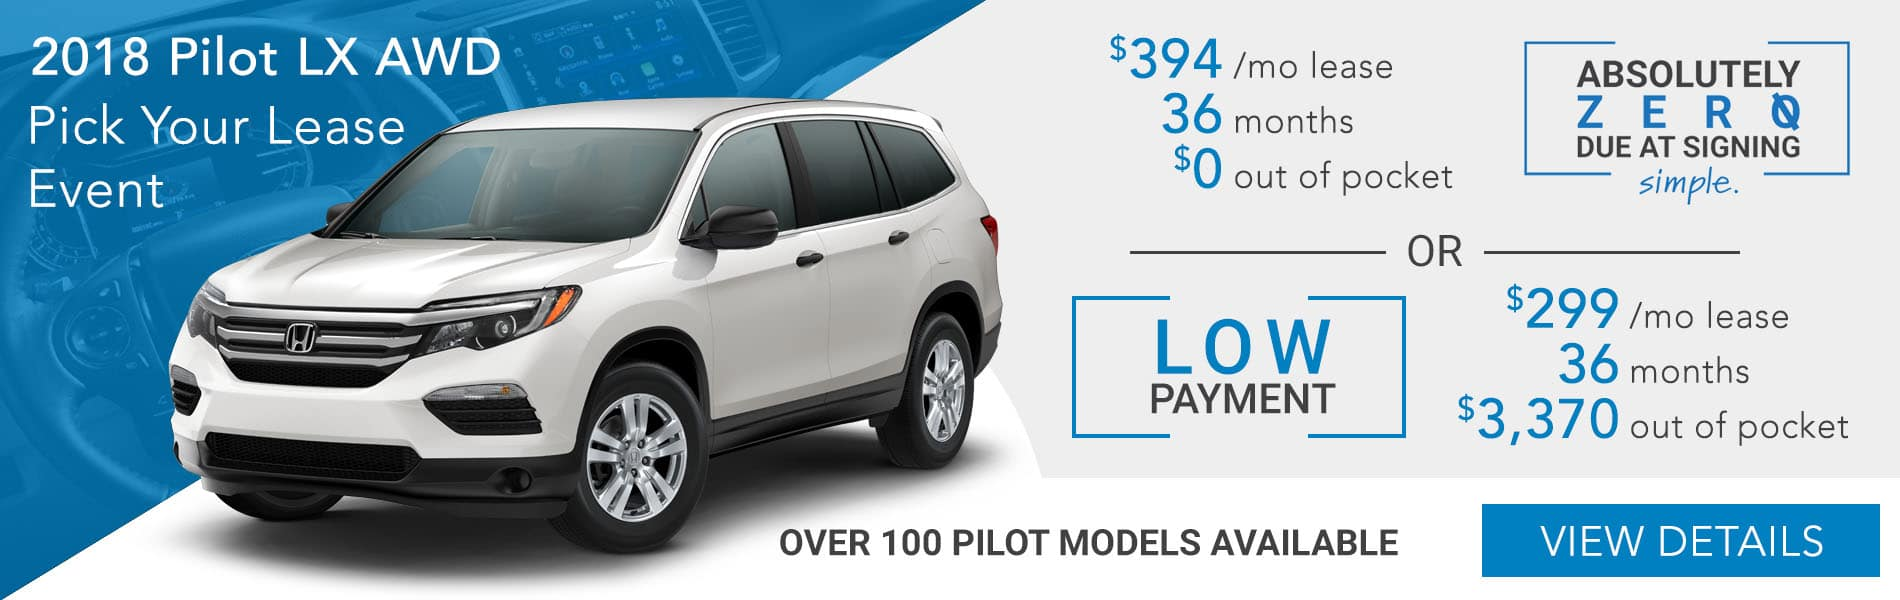 Pick your lease event. 2018 Pilot LX AWD CVT choose absolutely zero out of pocket lease at $394 per month or choose the low payment option at $299 per month with $3,370 out of pocket.